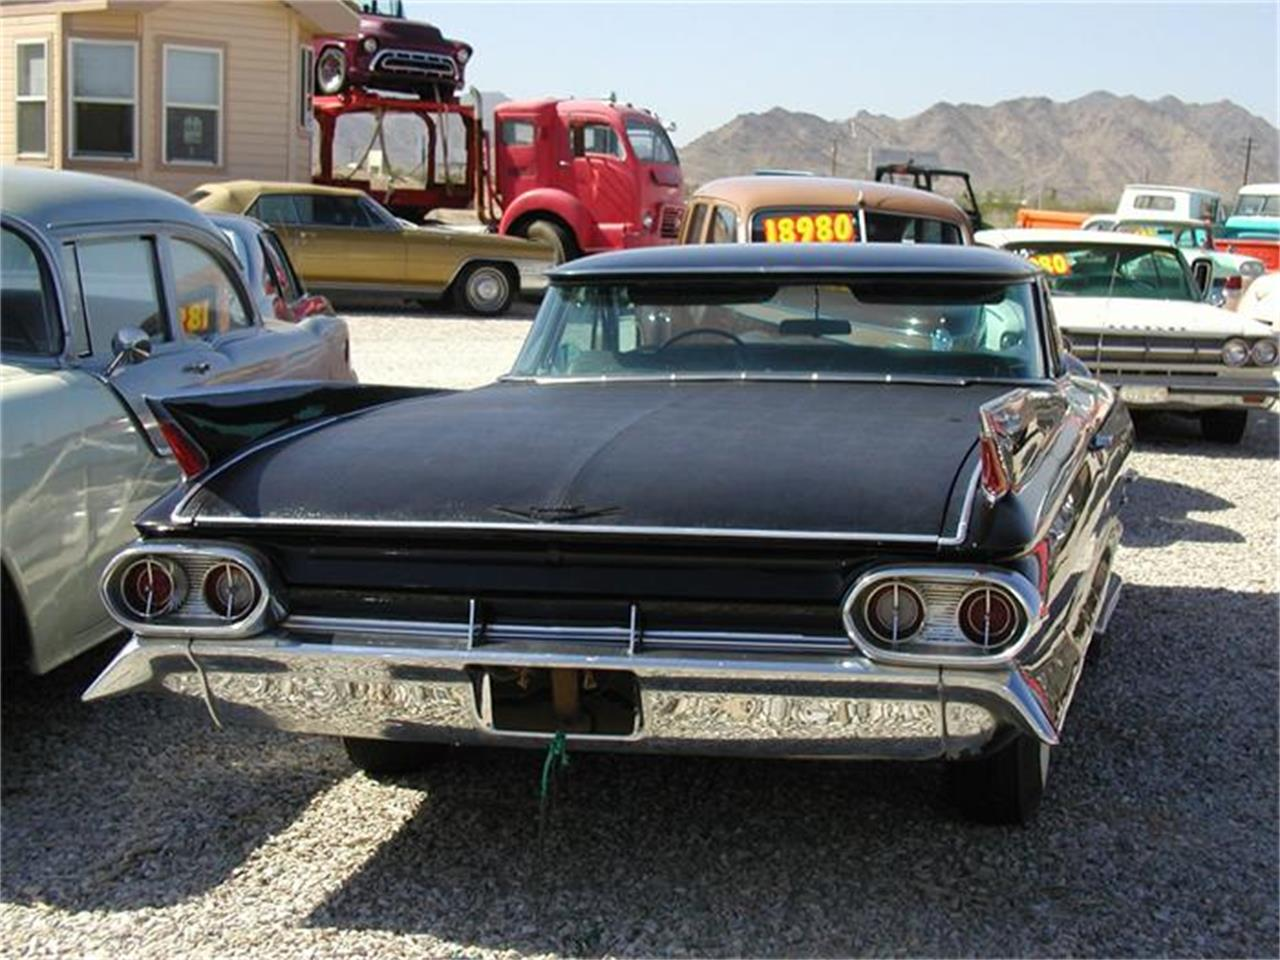 Large Picture of 1961 Cadillac 4-Dr Sedan located in Arizona - $29,980.00 - 97OS